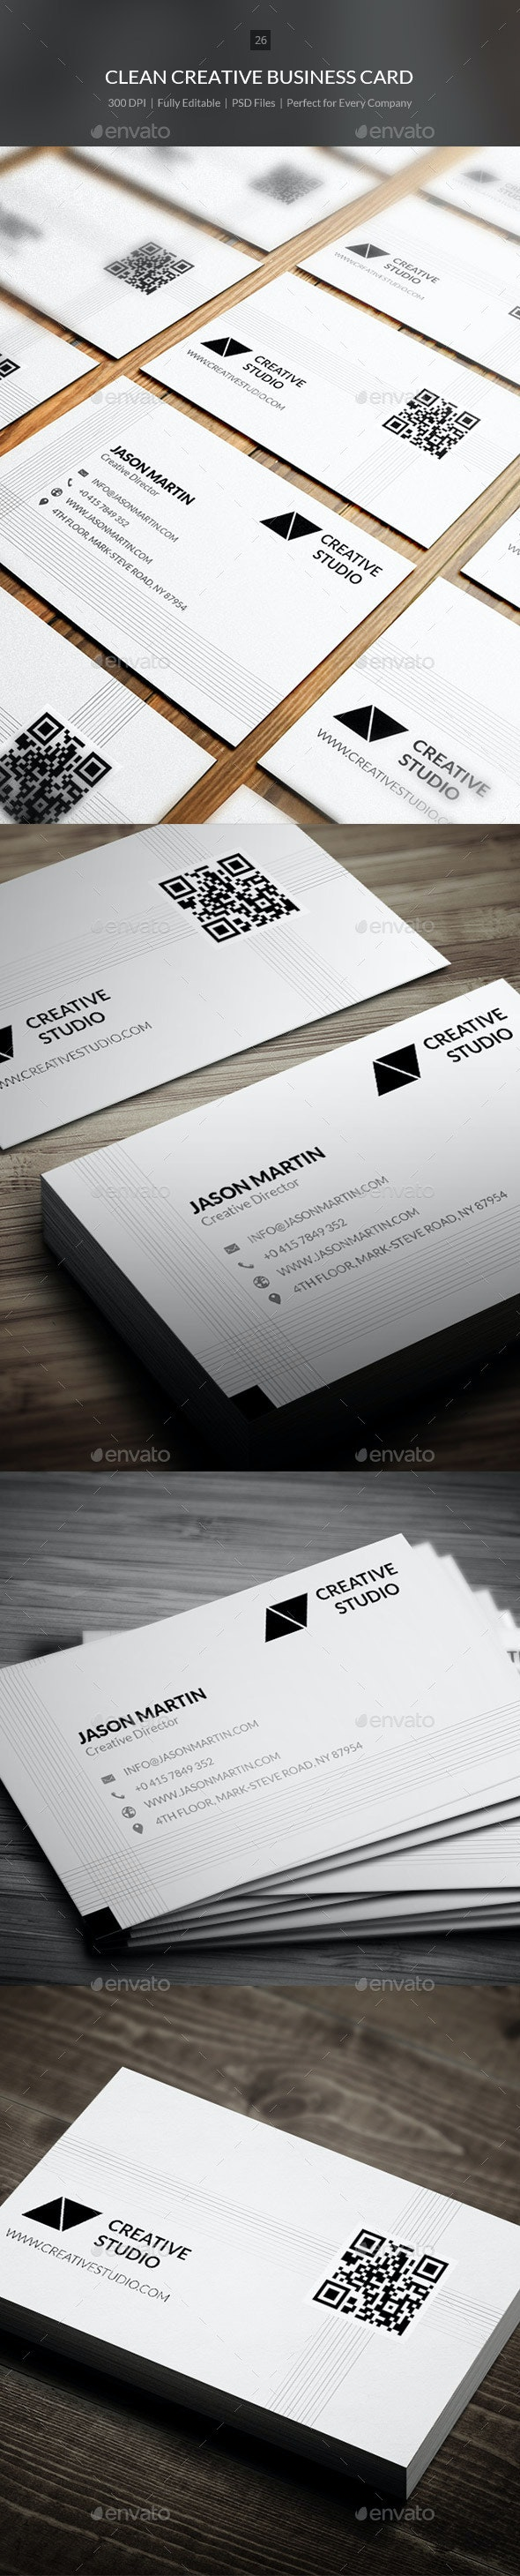 Clean Creative Business Card - 26 - Creative Business Cards